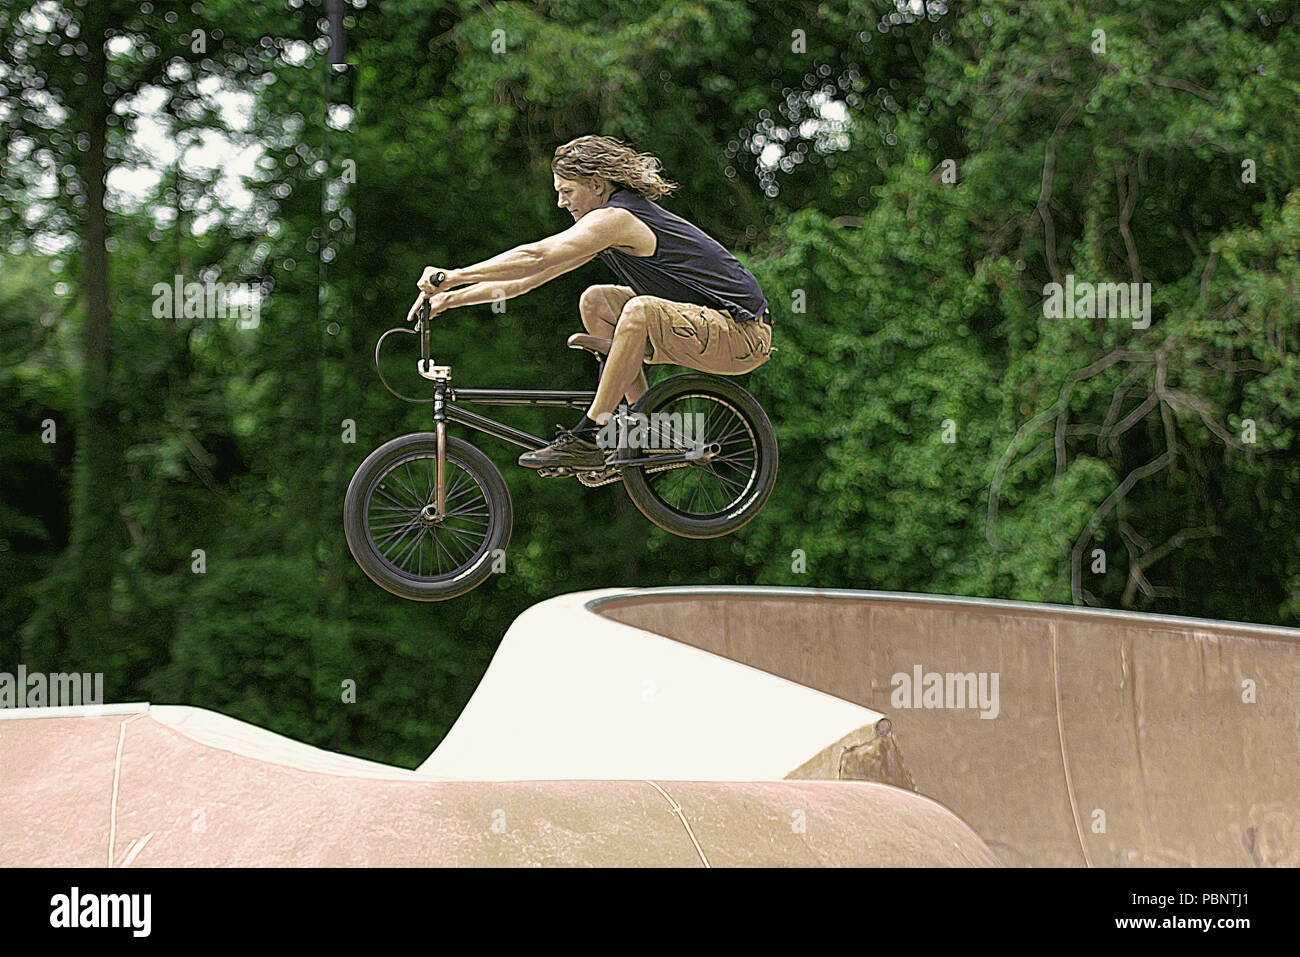 Middle age adult performing bike tricks at BMX bike and Skateboard park Stock Photo